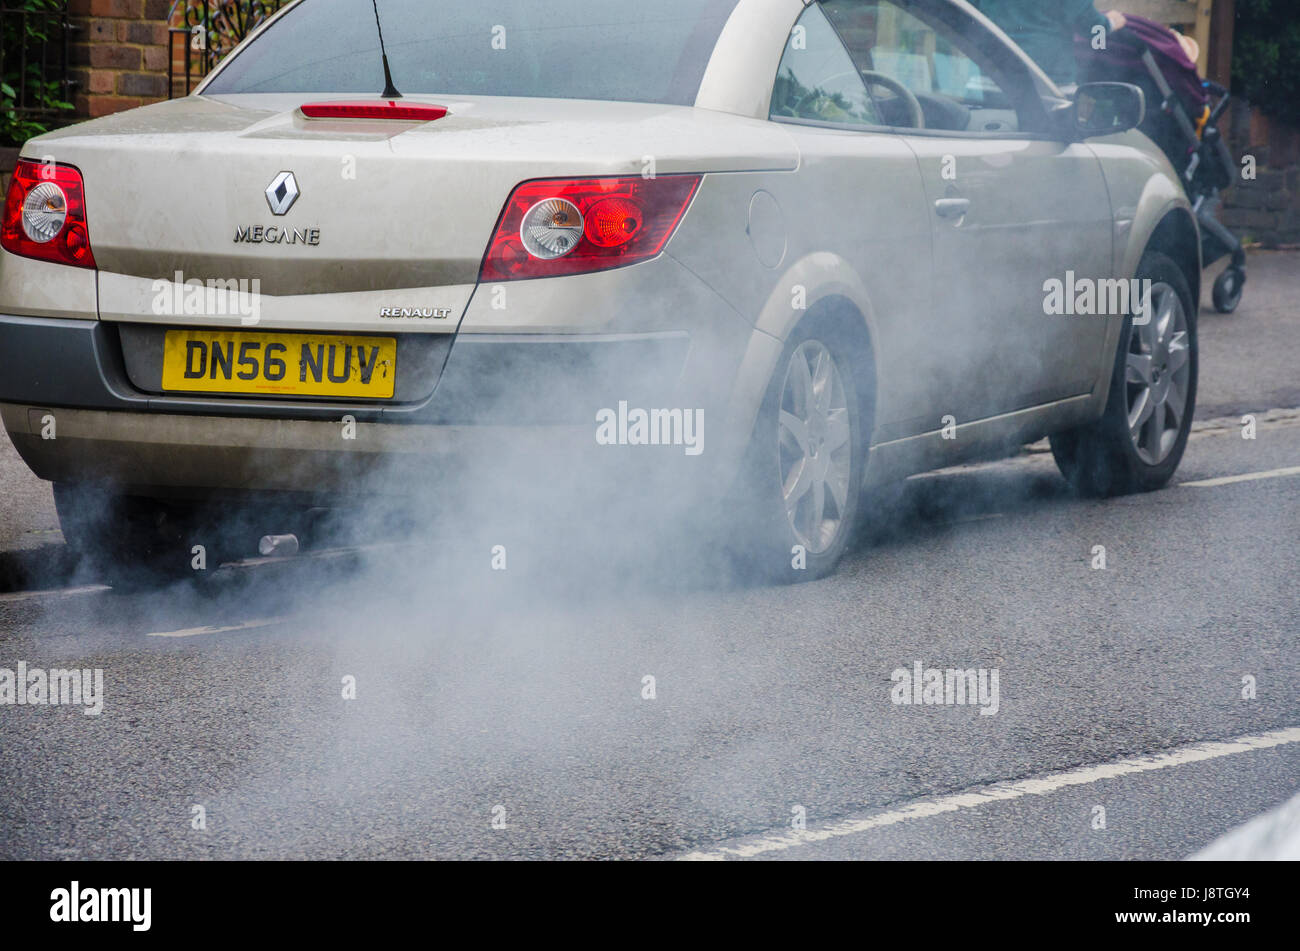 A car producing smoke form it's exhaust, - Stock Image